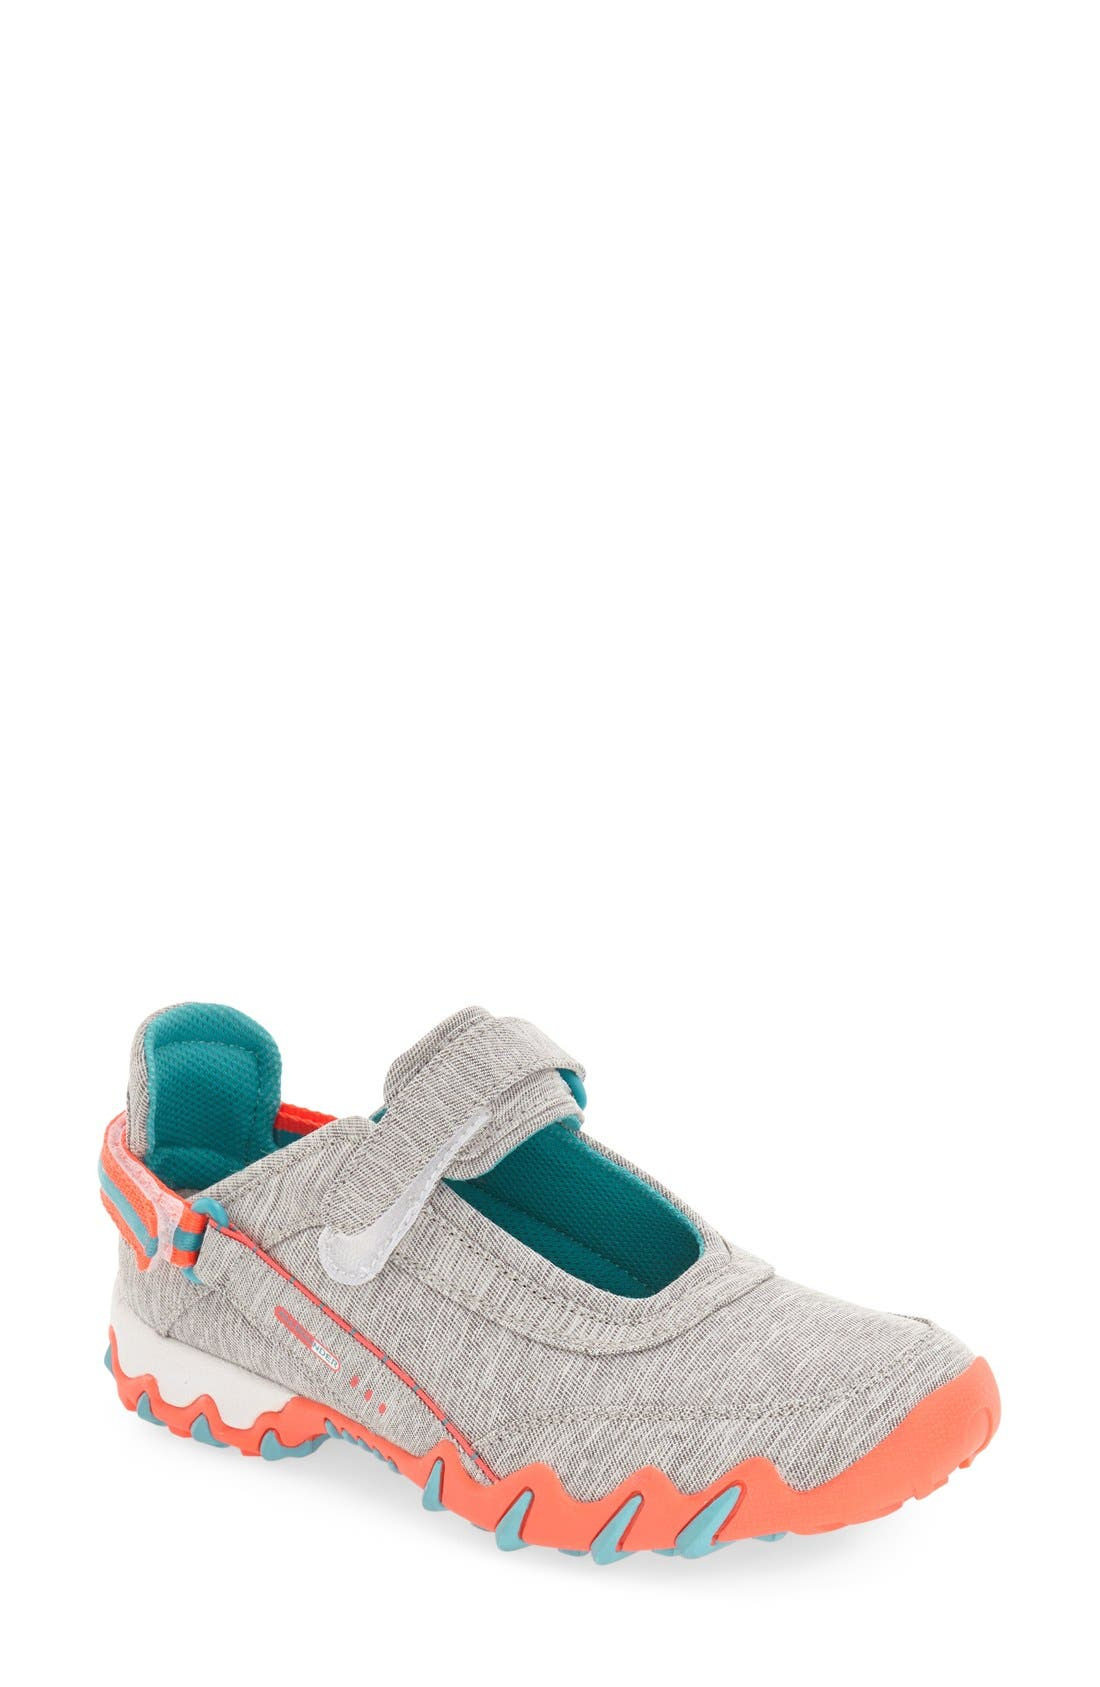 ALLROUNDER BY MEPHISTO 'Niro' Mary Jane Sneaker